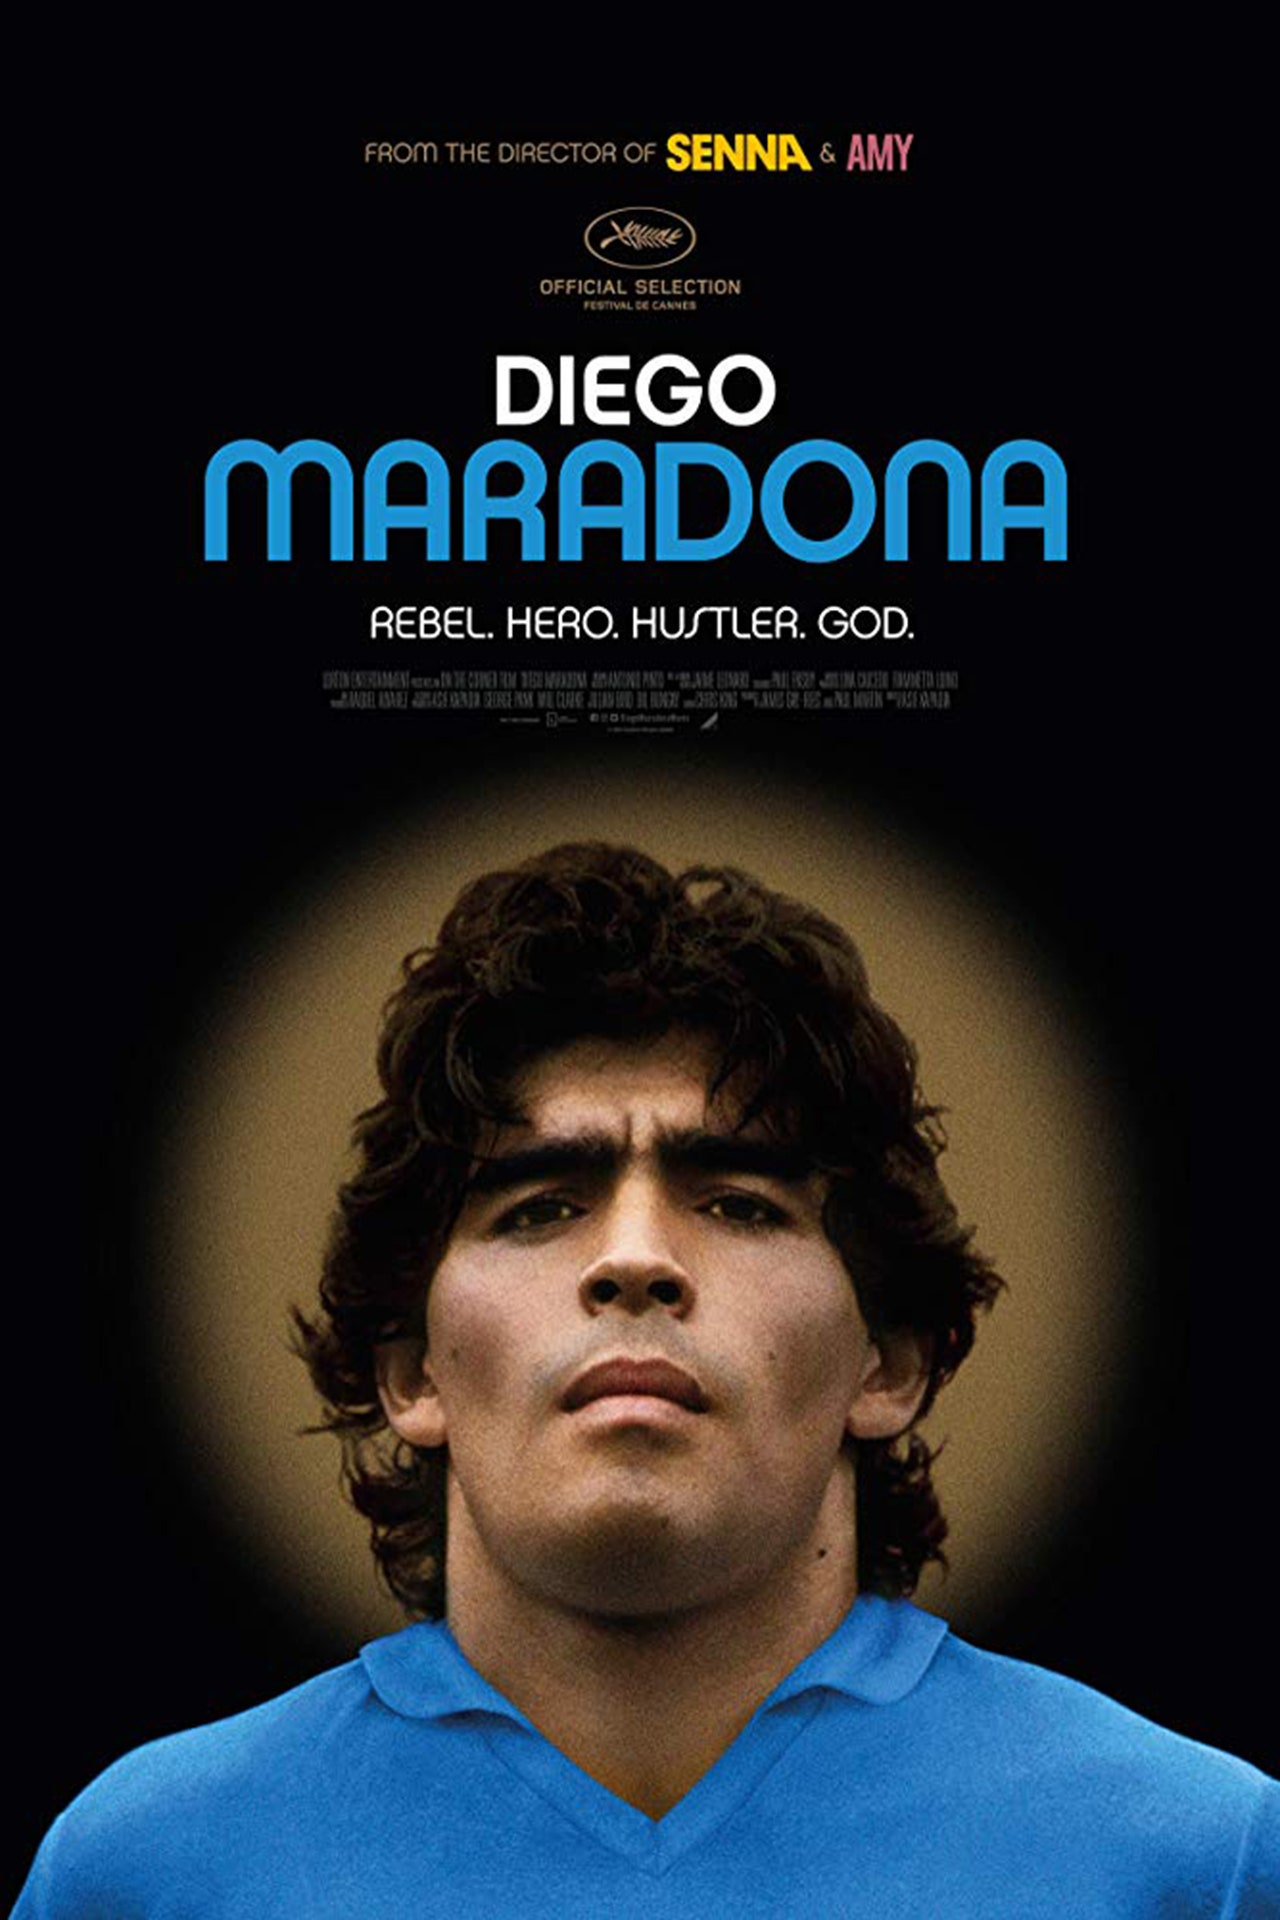 What Killed Maradona?